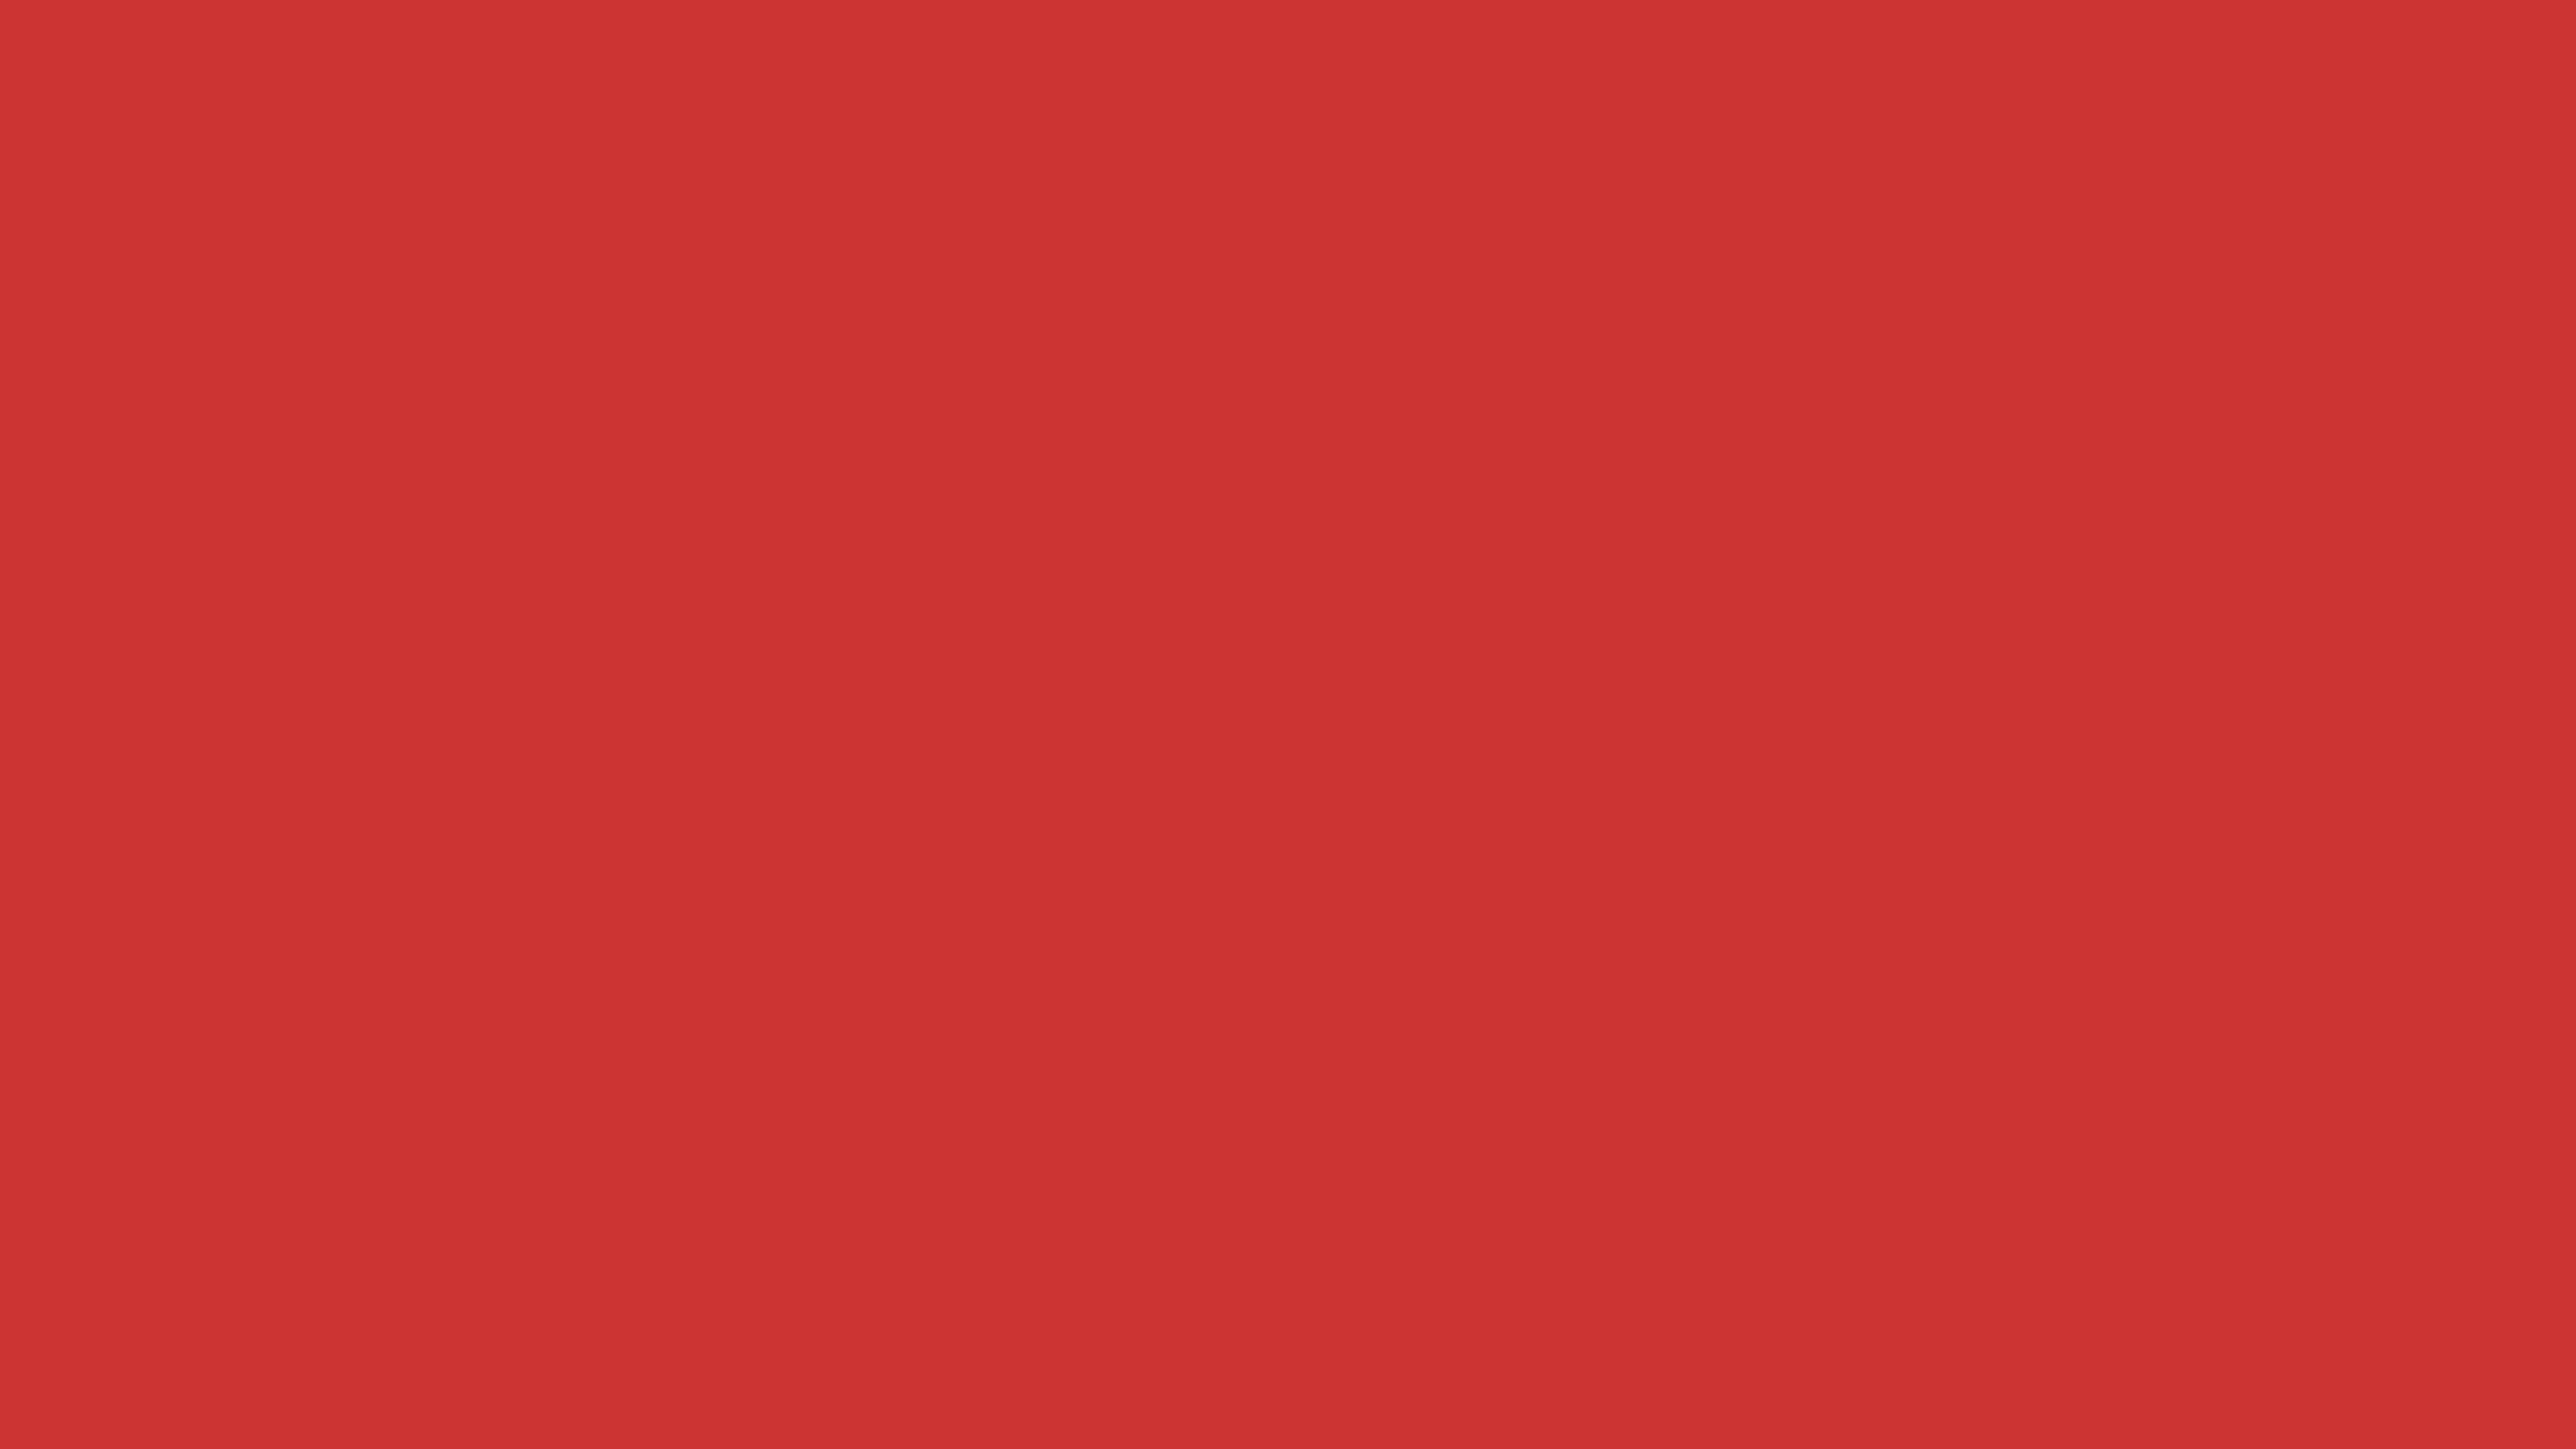 5120x2880 Persian Red Solid Color Background